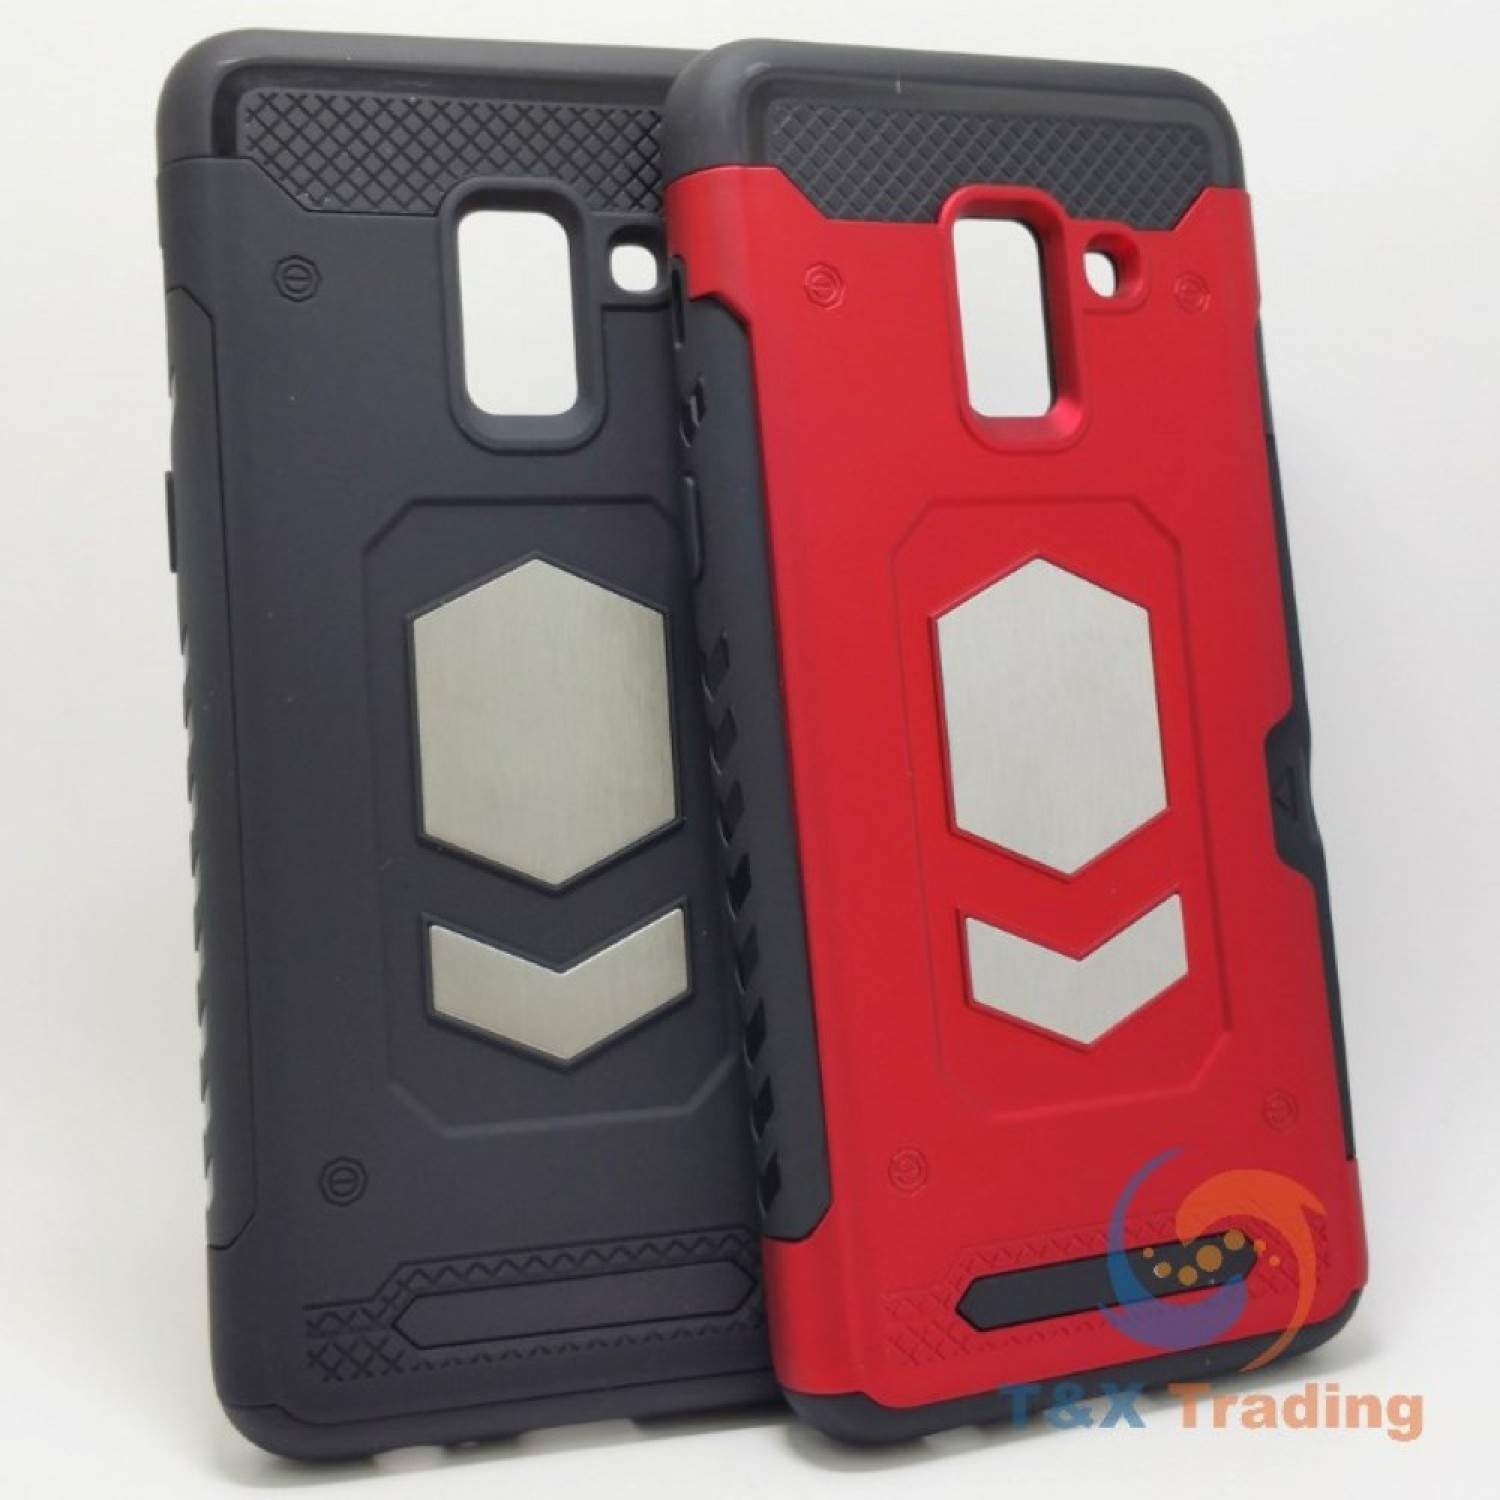 Magnet Enabled Badge with Credit Card Holder Case